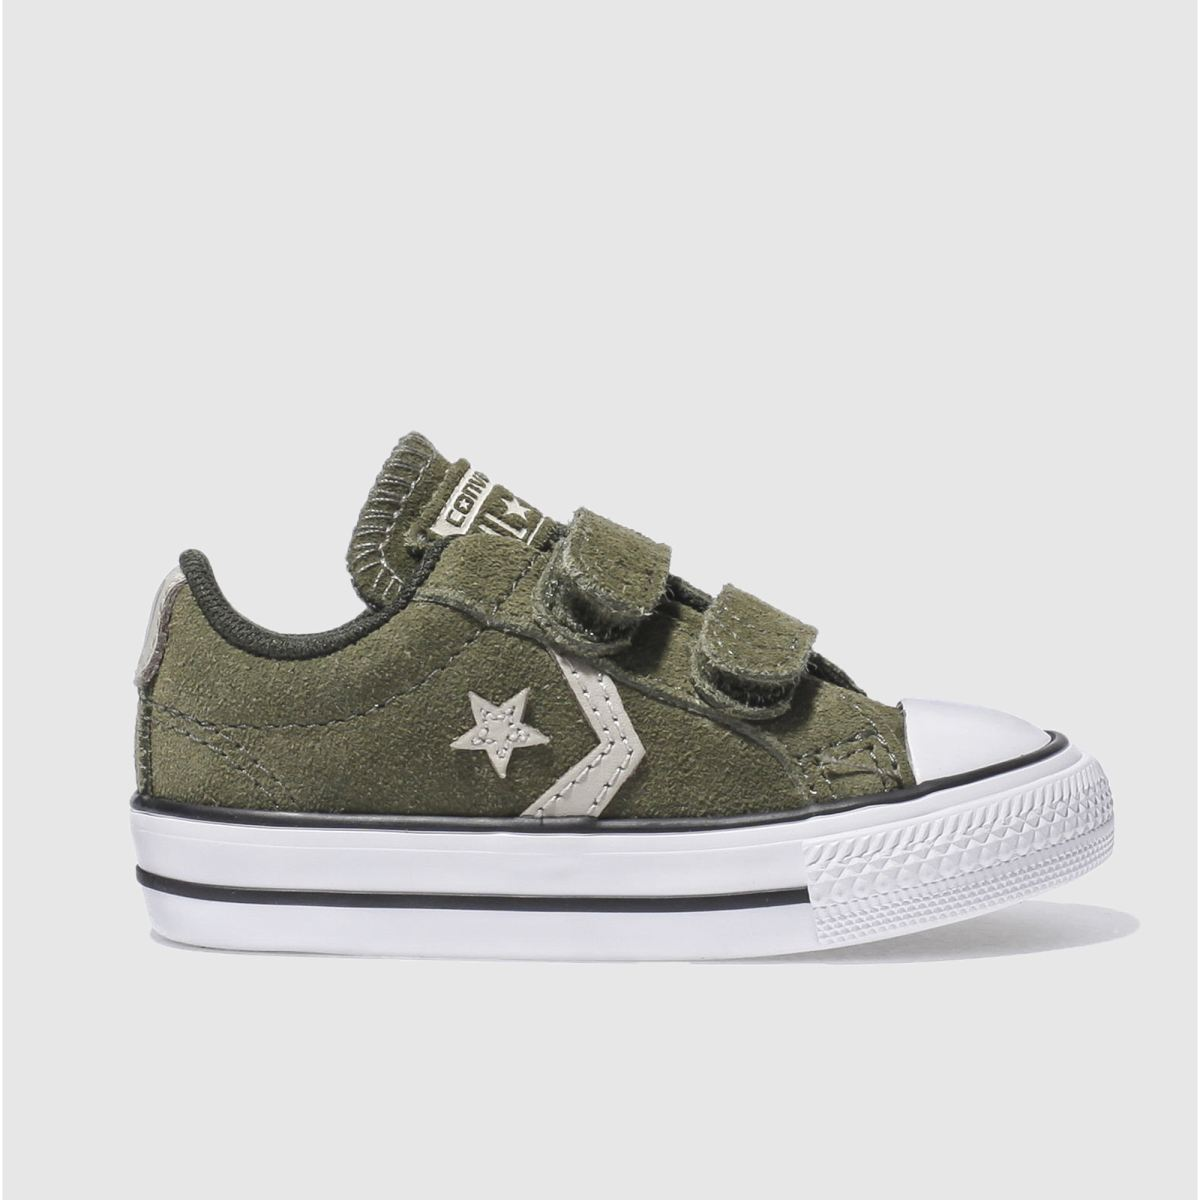 Converse Khaki Star Player 2v Unisex Toddler Toddler